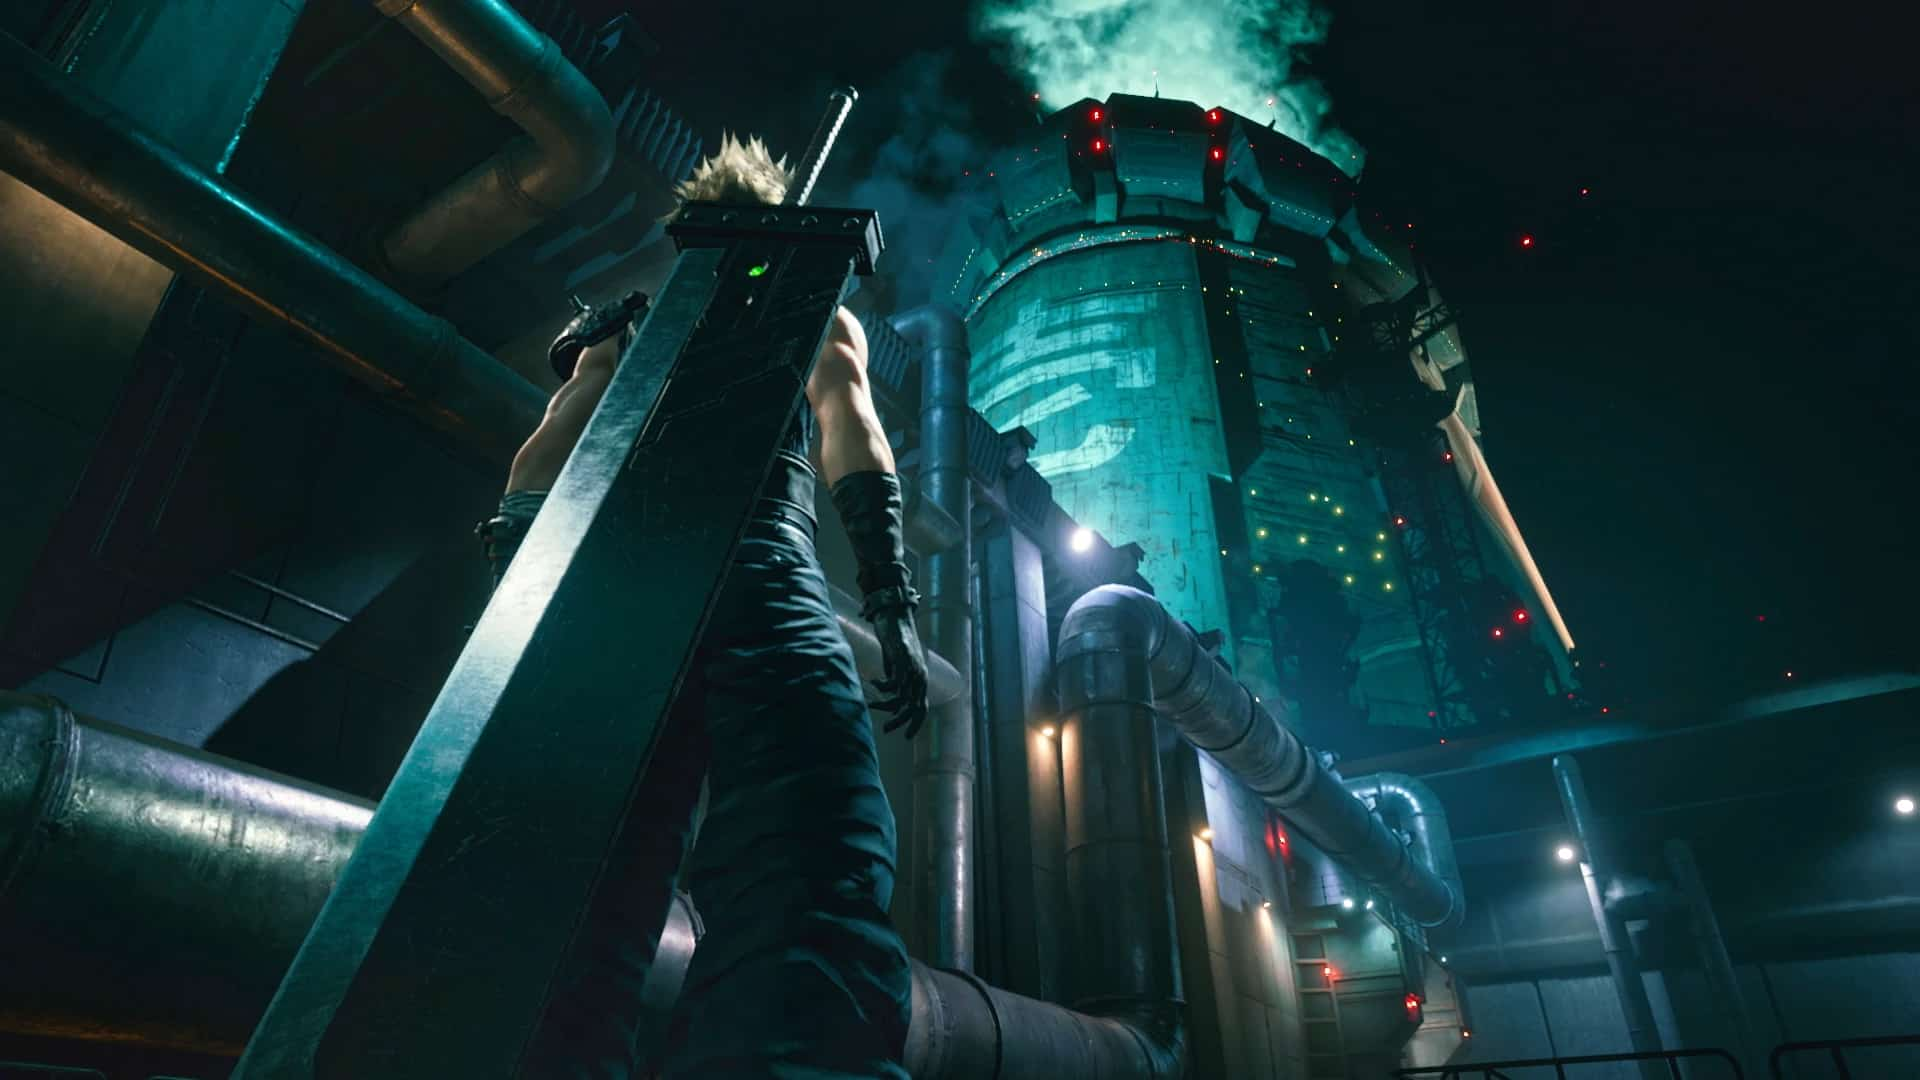 Final Fantasy VII Remake Shinra US antitrust law breakdown: President Biden executive order, net neutrality, the Google Play lawsuits, the Amazon-MGM merger, and more